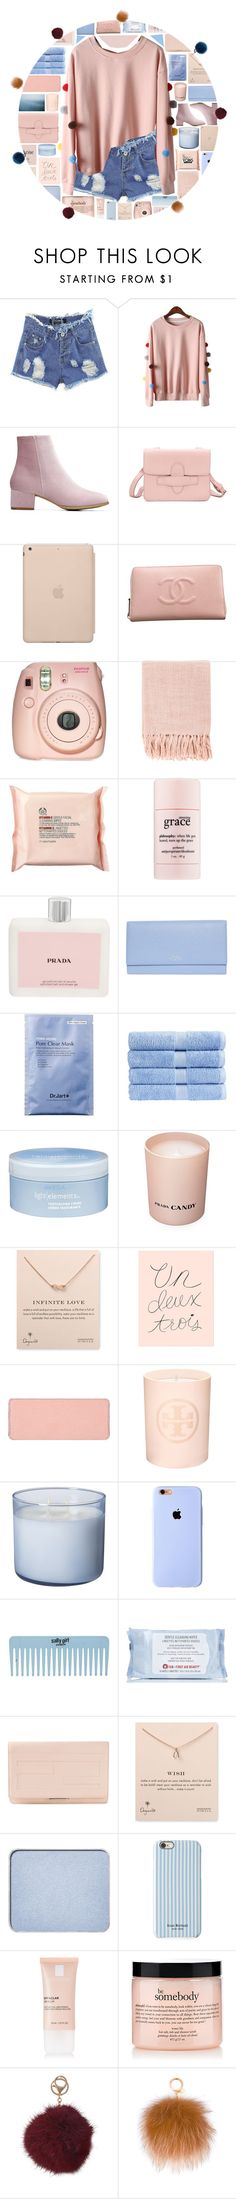 """YOINS"" by xgracieeee ❤ liked on Polyvore featuring Black Apple, Chanel, Fujifilm, Surya, Prada, The Body Shop, philosophy, Smythson, Christy and Aveda"